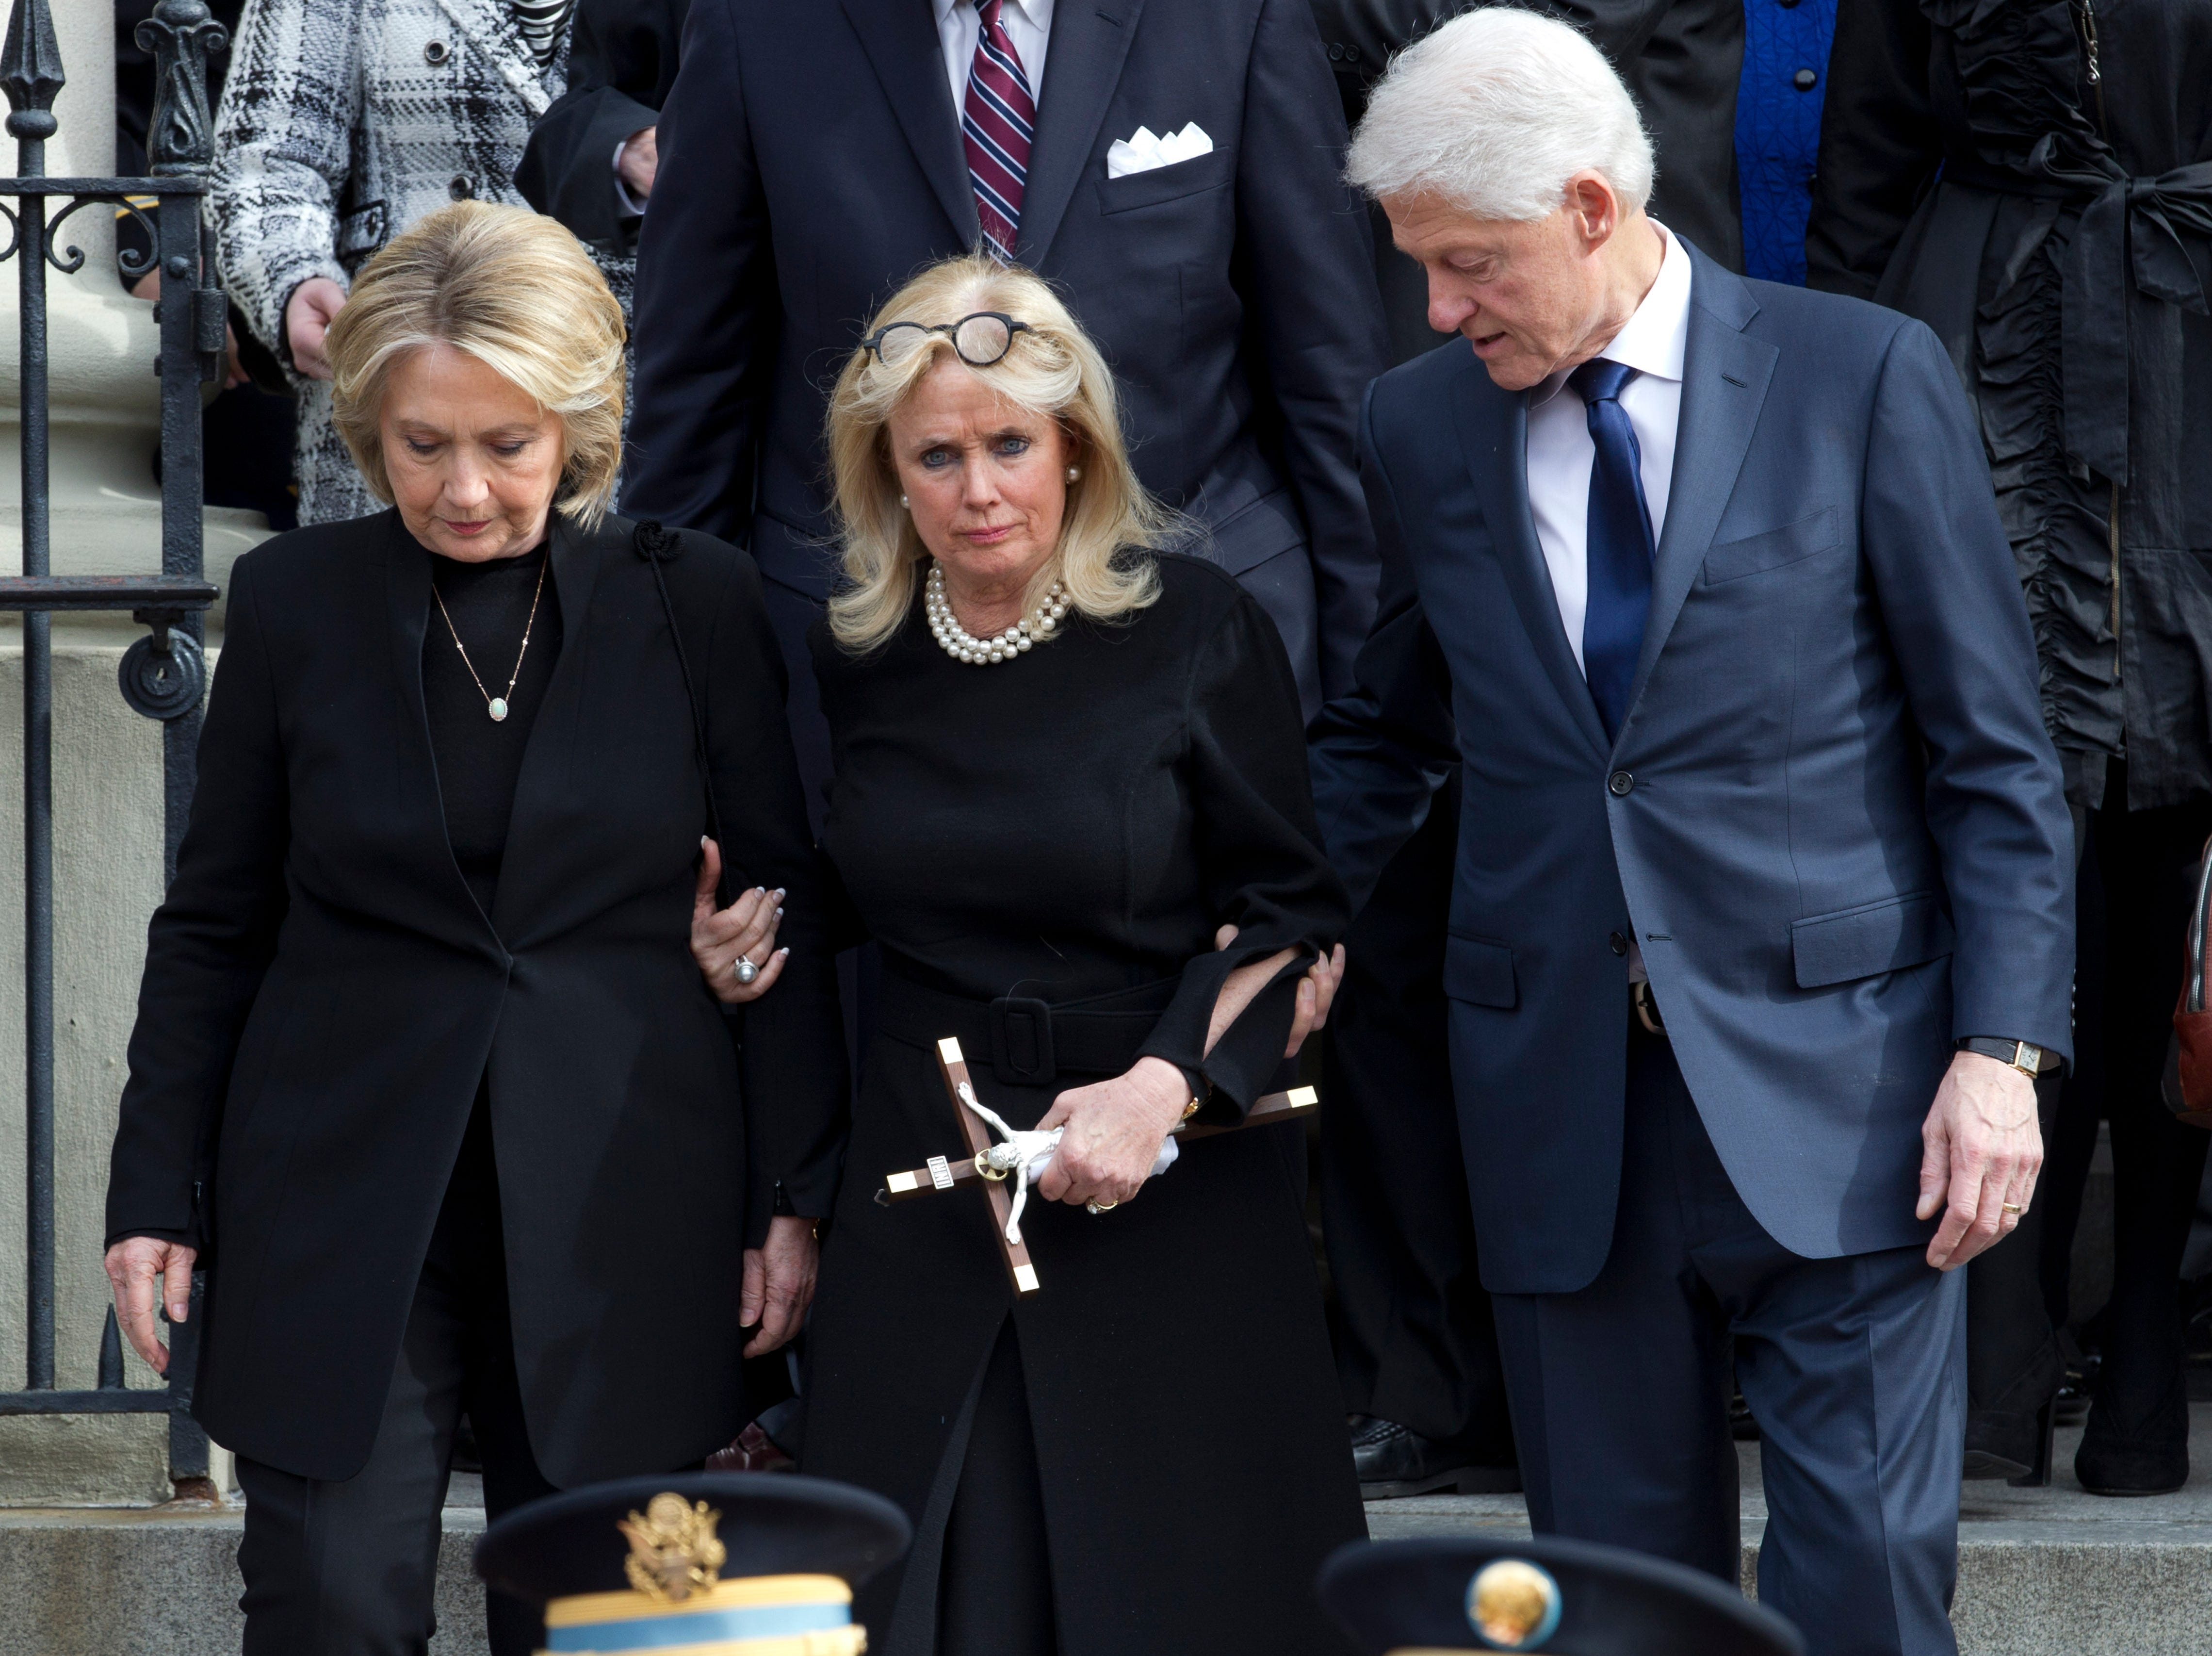 Rep. Debbie Dingell, D-Dearborn, center, accompanied by former President Bill Clinton and former first lady Hillary Clinton, follows the flag-draped casket of former Rep. John Dingell after his funeral at Holy Trinity Catholic Church, Thursday, Feb. 14, 2019, in Washington.